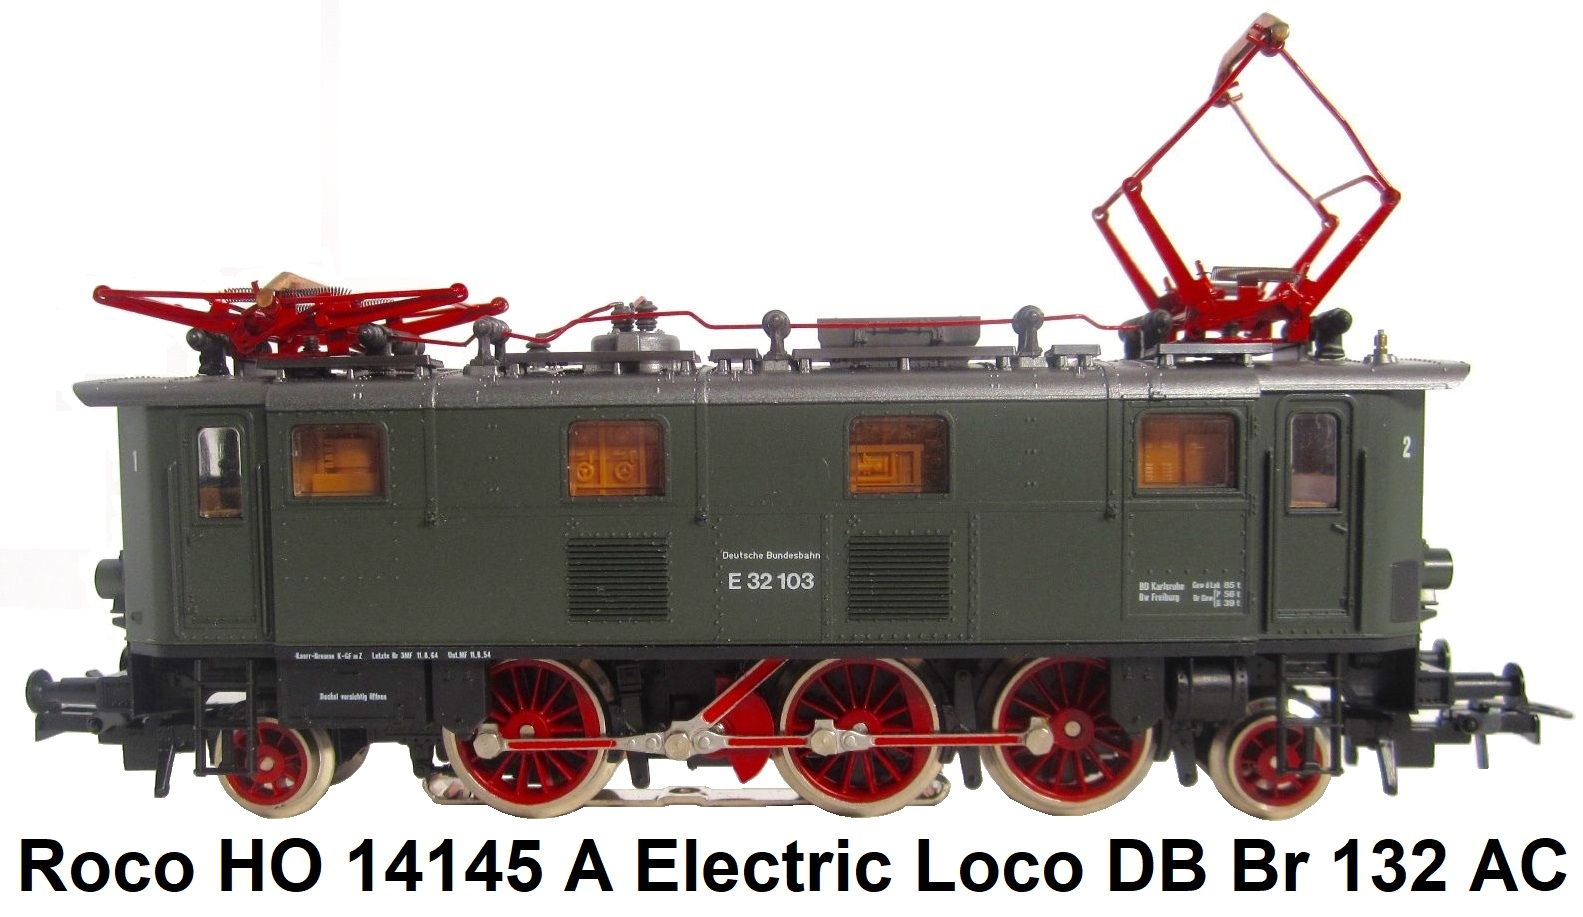 Roco HO gauge DC powered #33266 0-8-0 Steam Locomotive